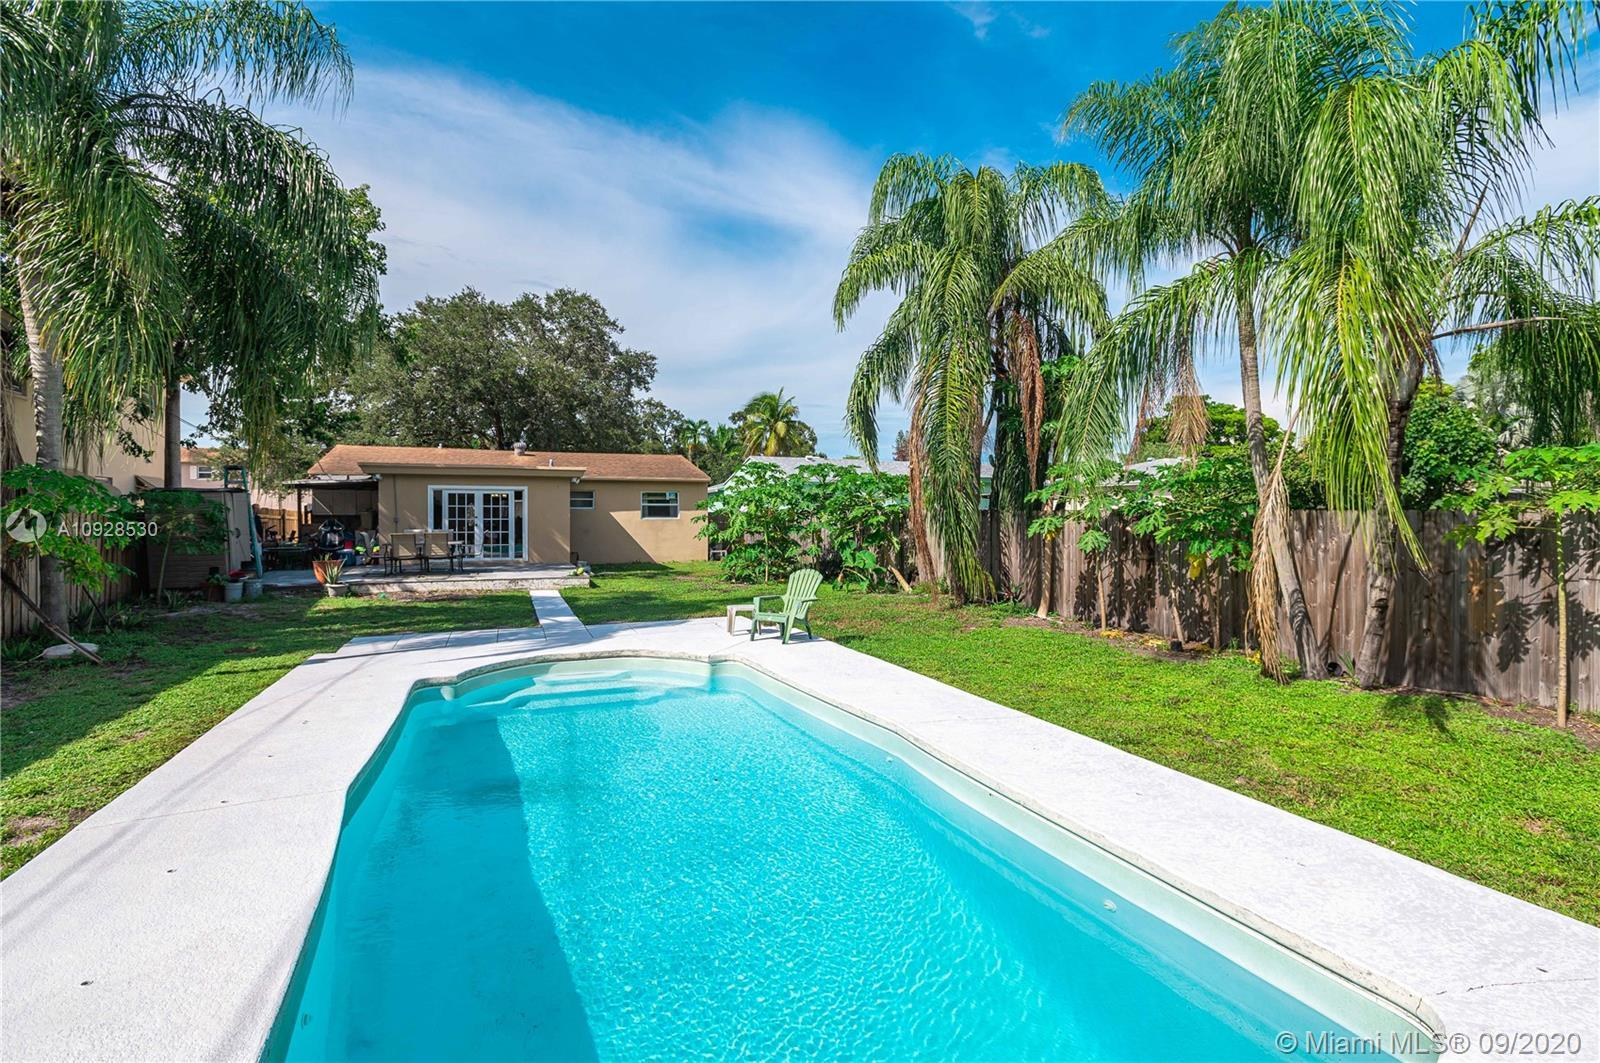 Beautiful Classic home located in a quiet family neighborhood located in Hollywood East of 95. Singl